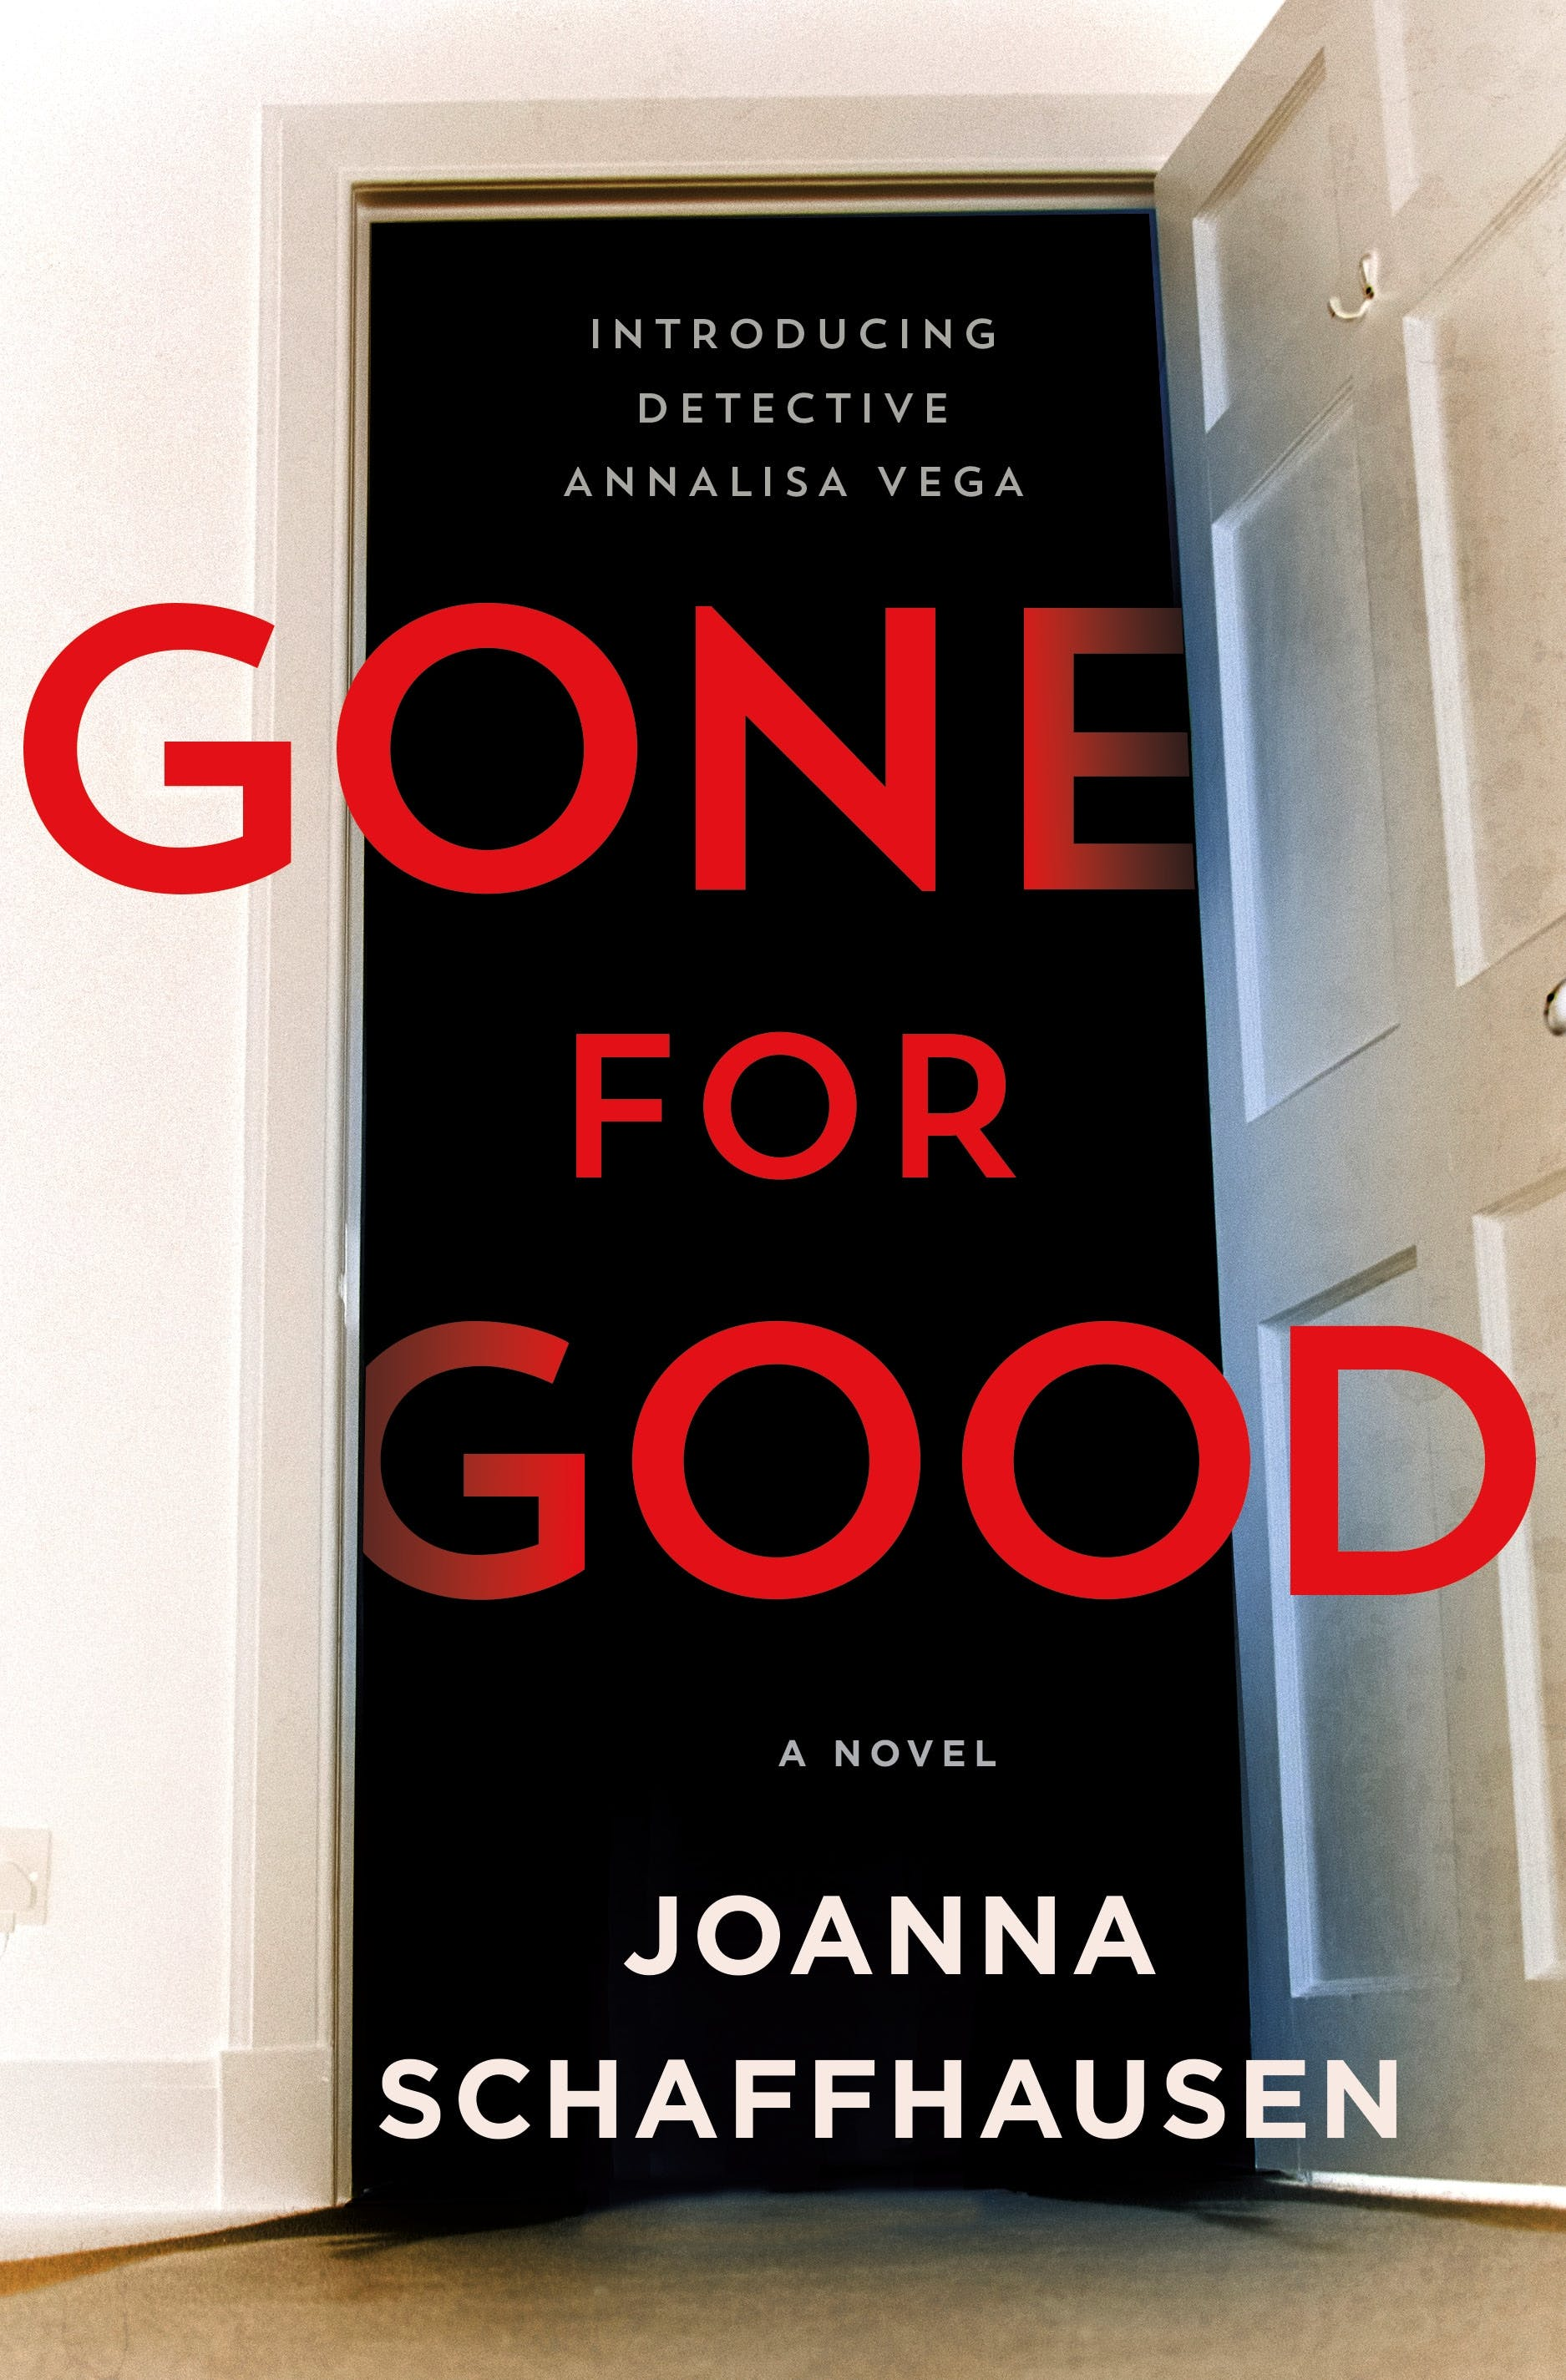 Image of Gone for Good